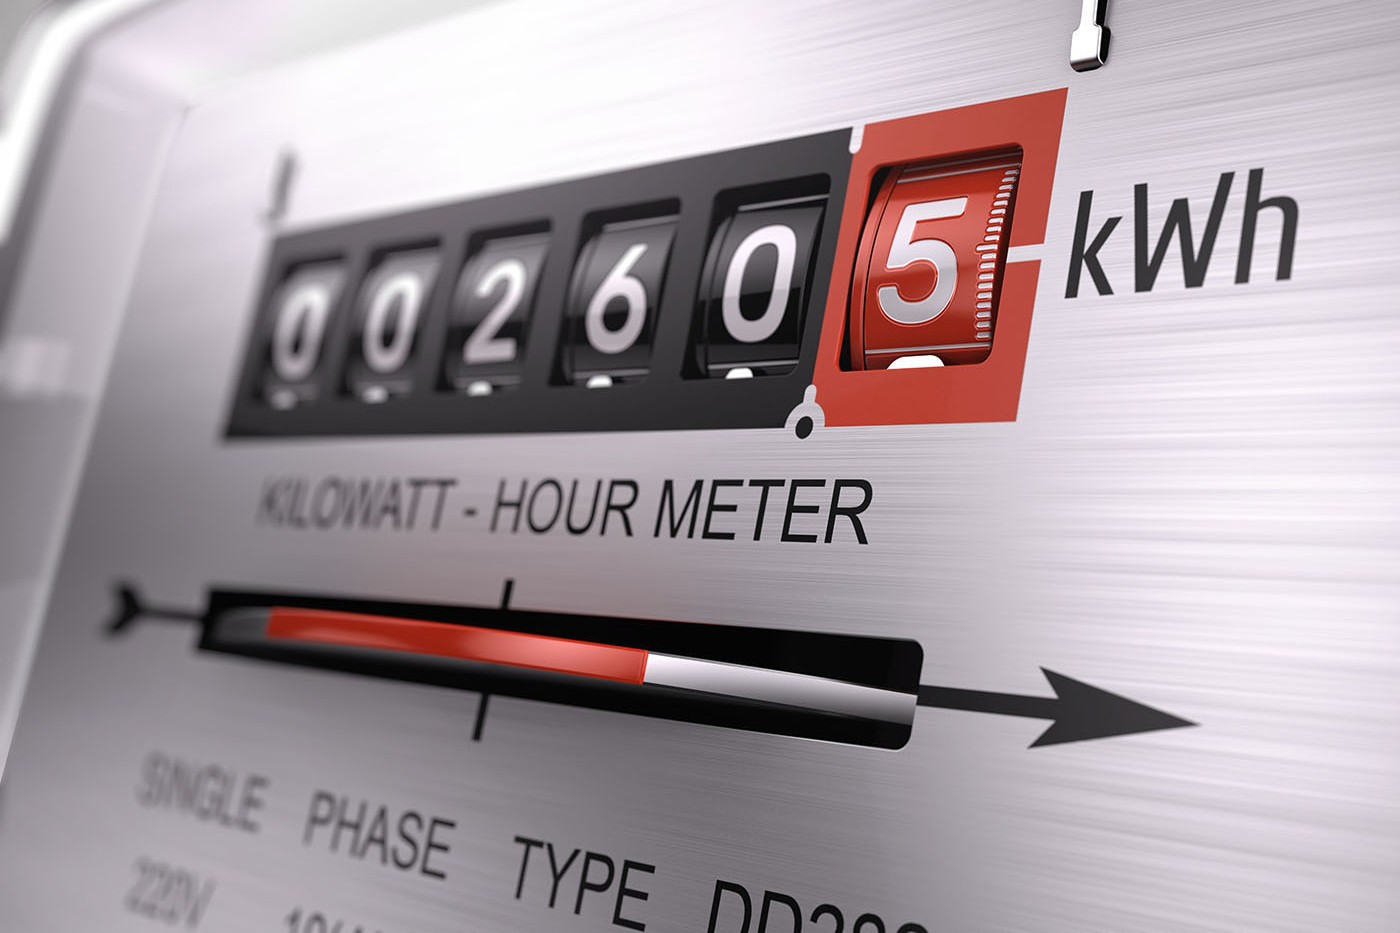 Benefit from Smart Meter technology